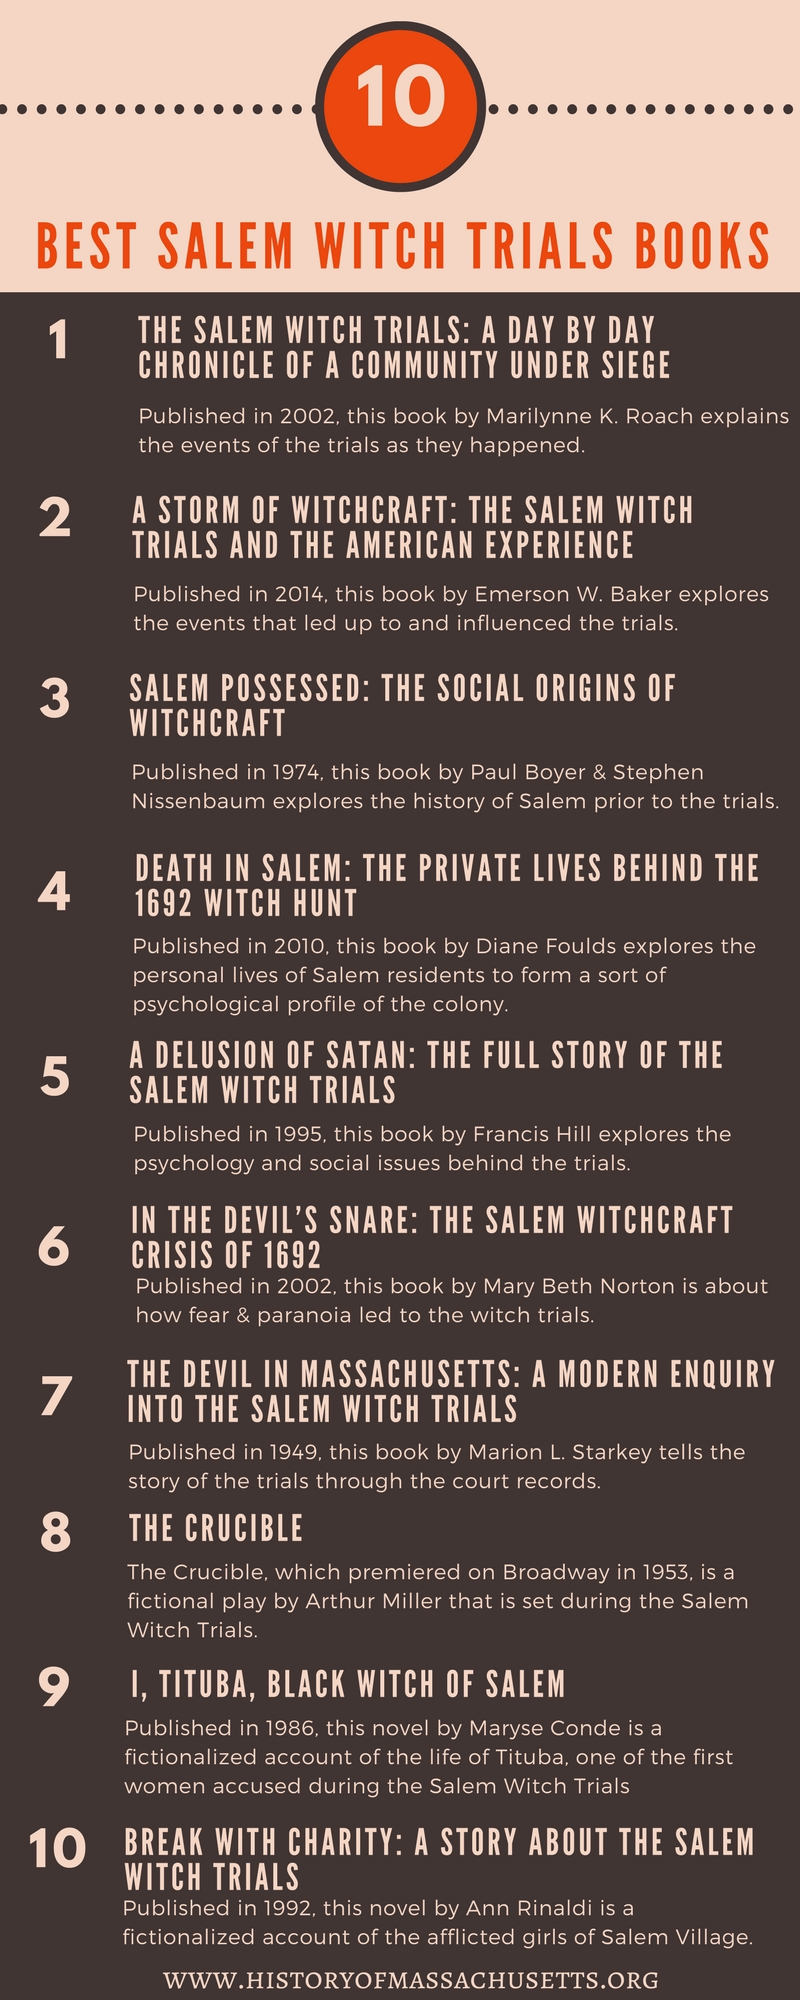 Best-Salem-Witch-Trials-Books-Infographic